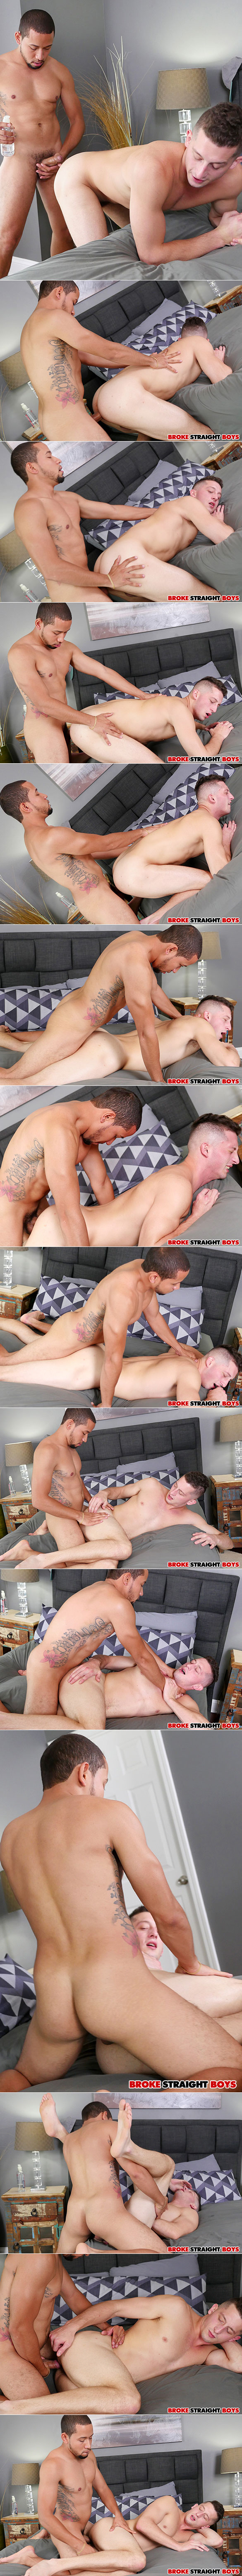 Broke Straight Boys: Newbie Hunter Lopez barebacks Drake Tyler